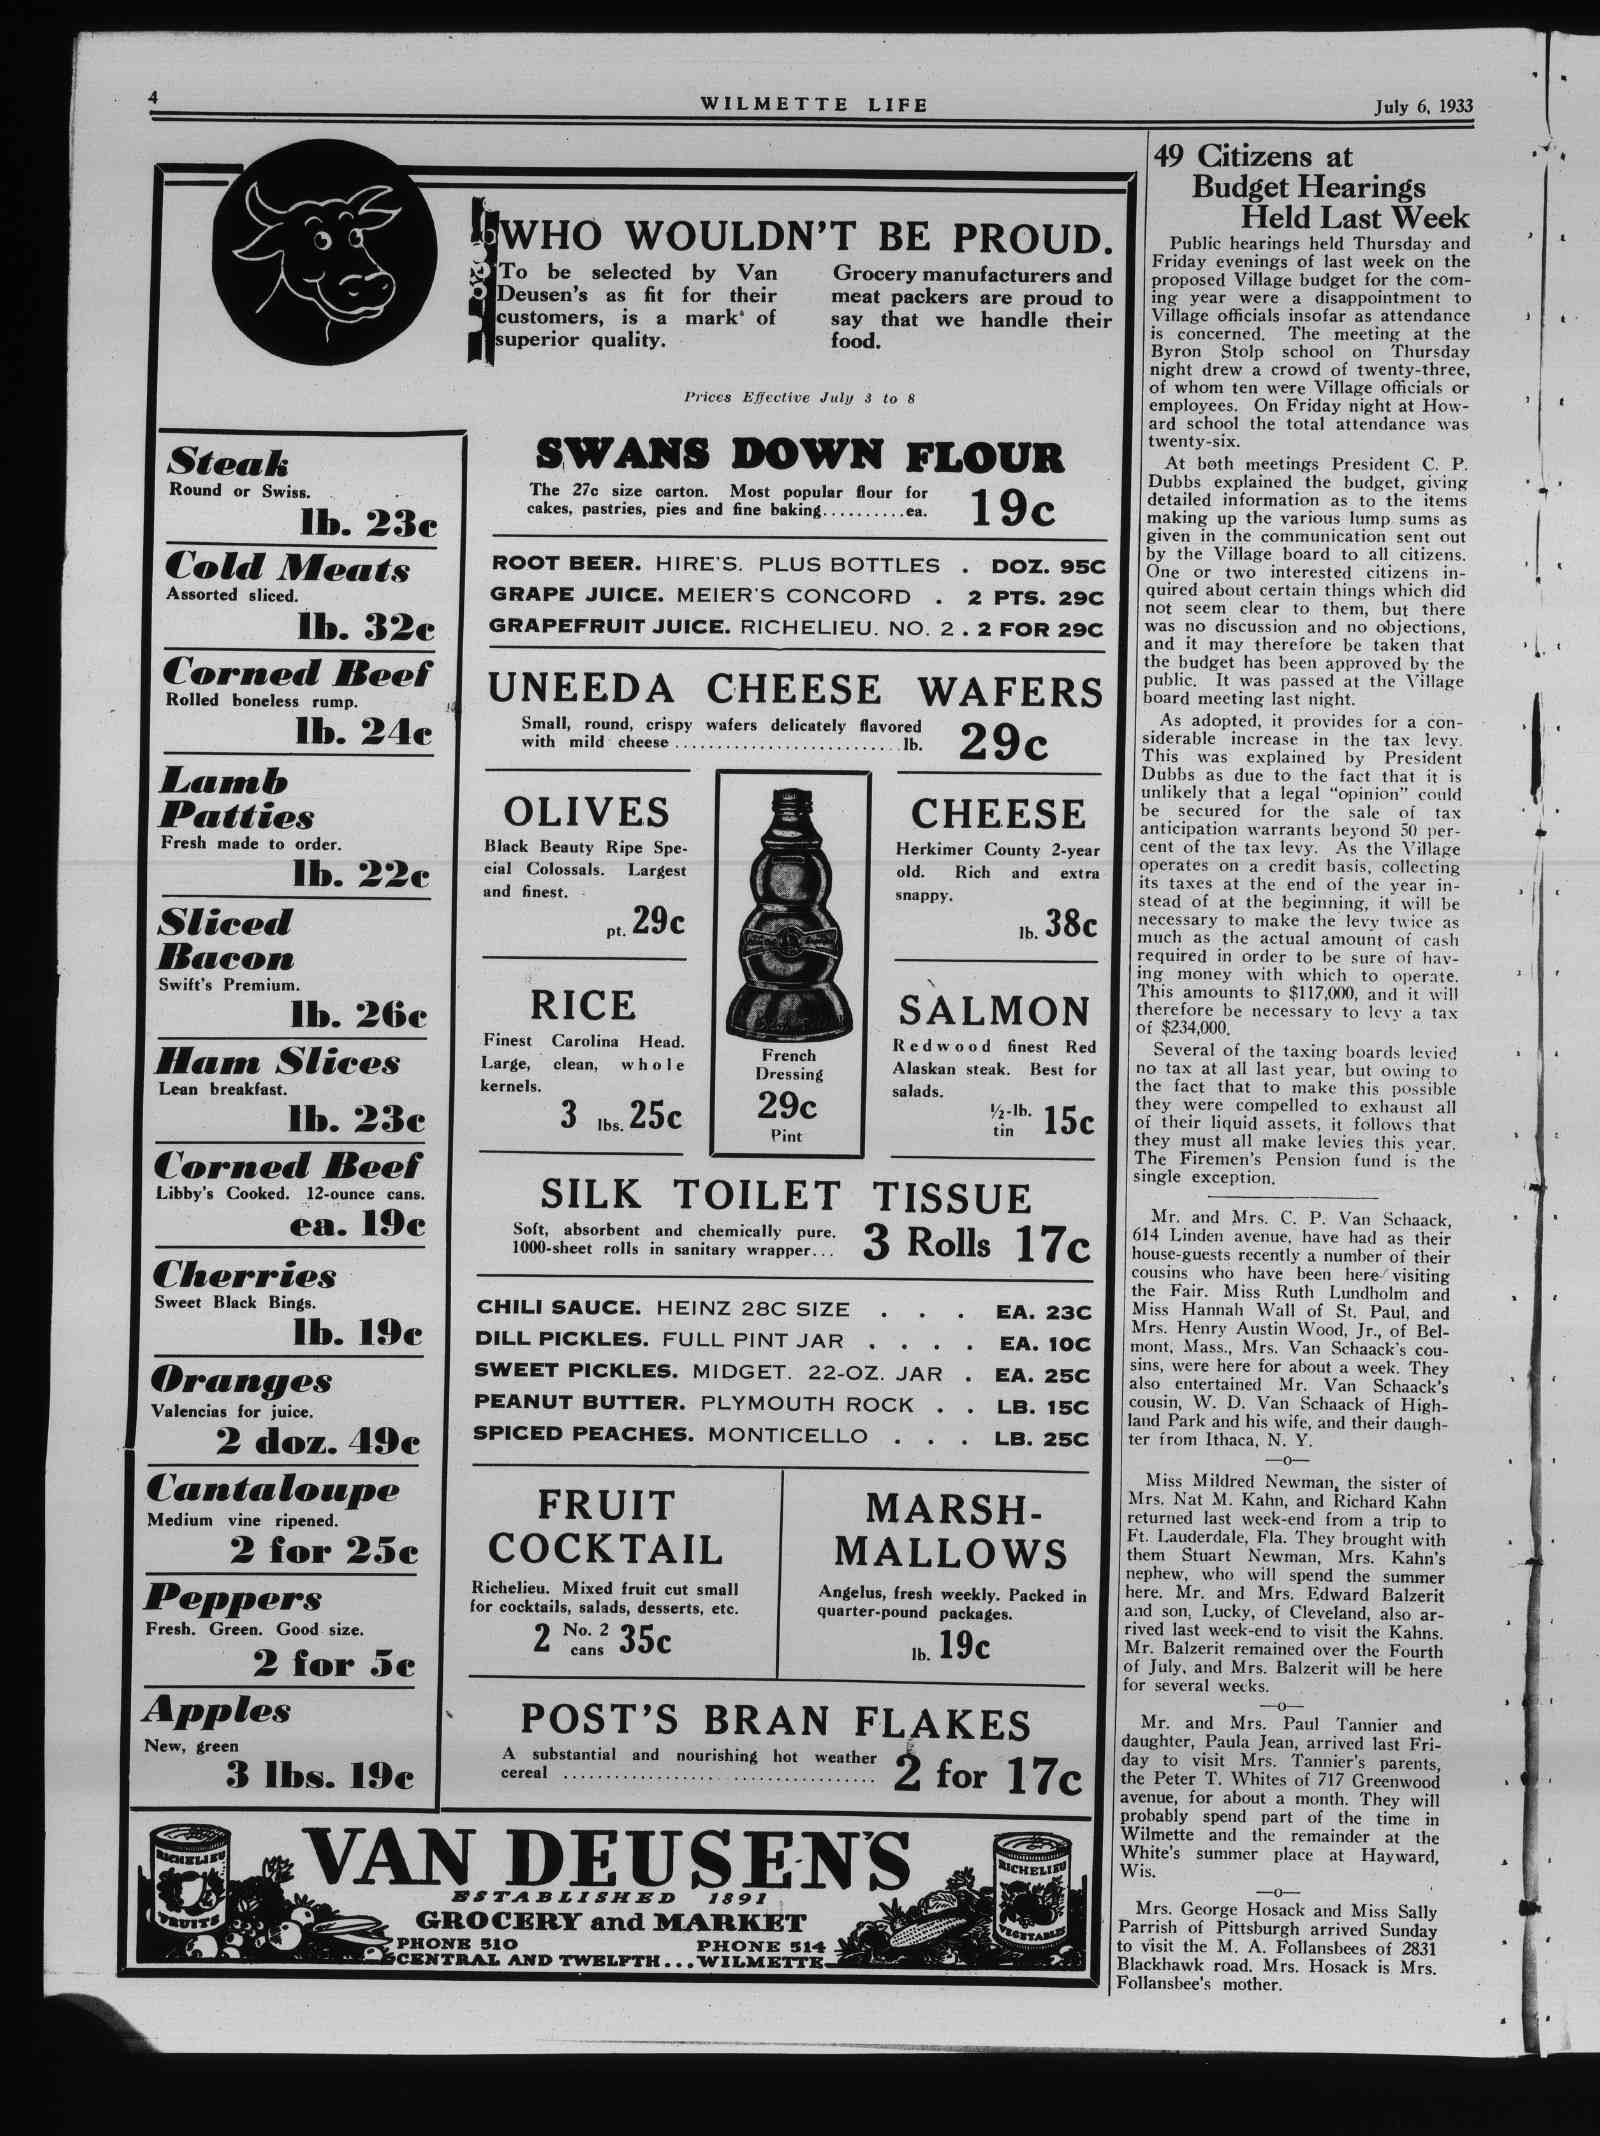 Wilmette Life (Wilmette, Illinois), 6 Jul 1933